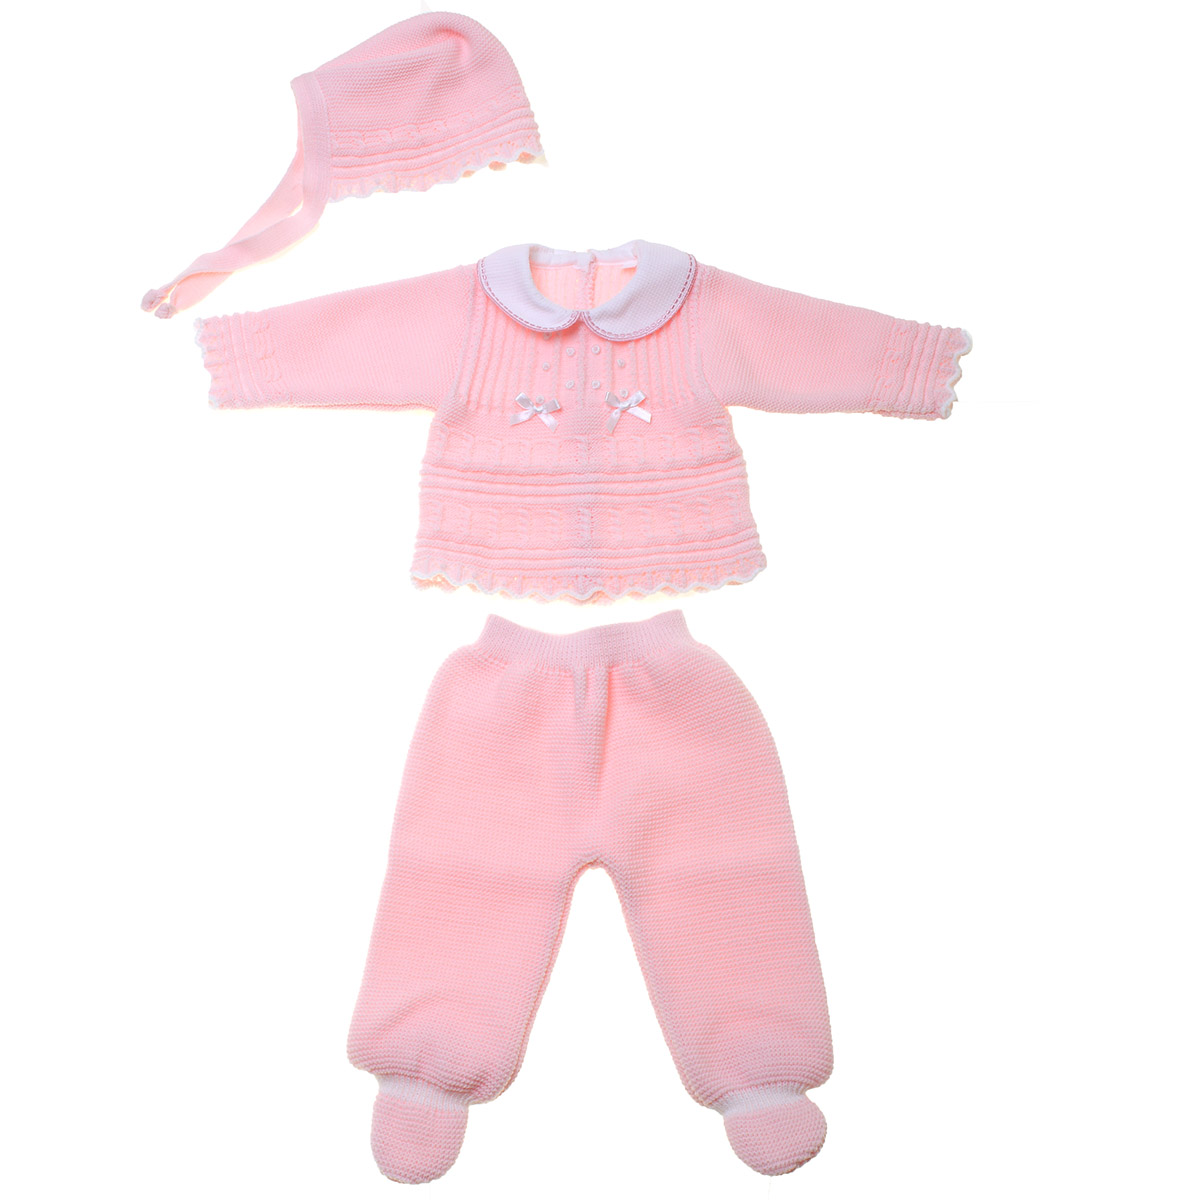 Preemie baby clothes for babies from lbs. Perfect for dressing little ones in the NICU, featuring soft, easy to use outfits as well as a complete wardrobe for going home.